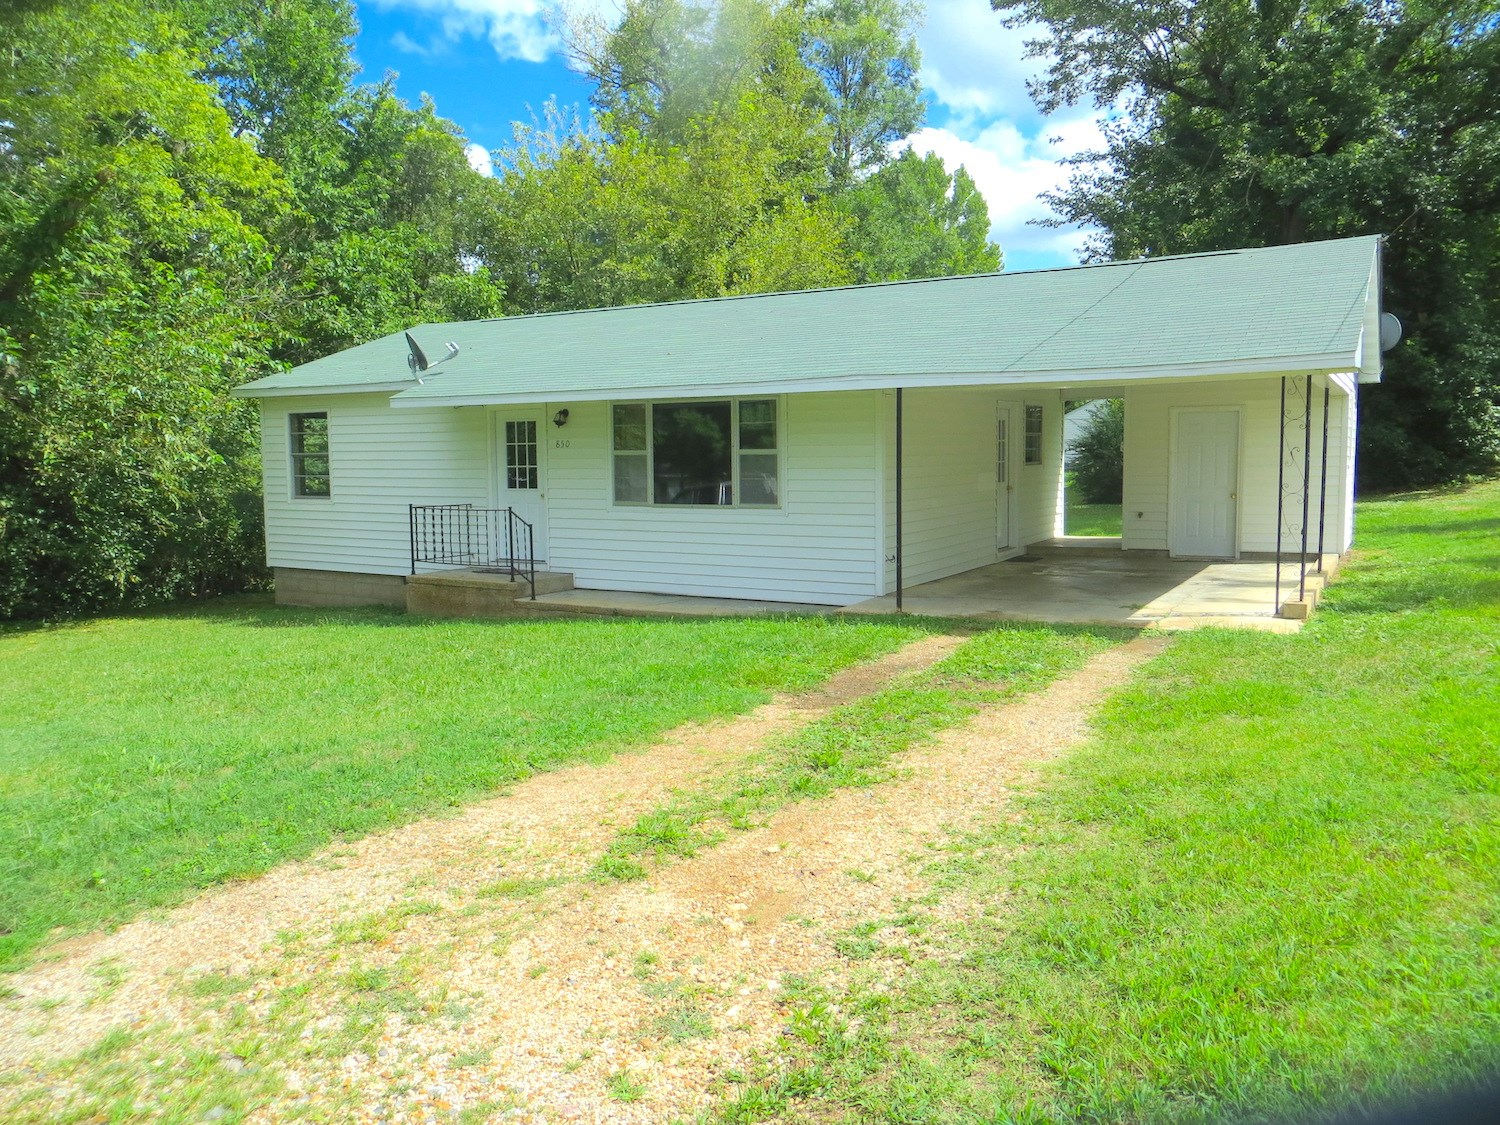 Home for Sale in Mammoth Spring, Arkansas